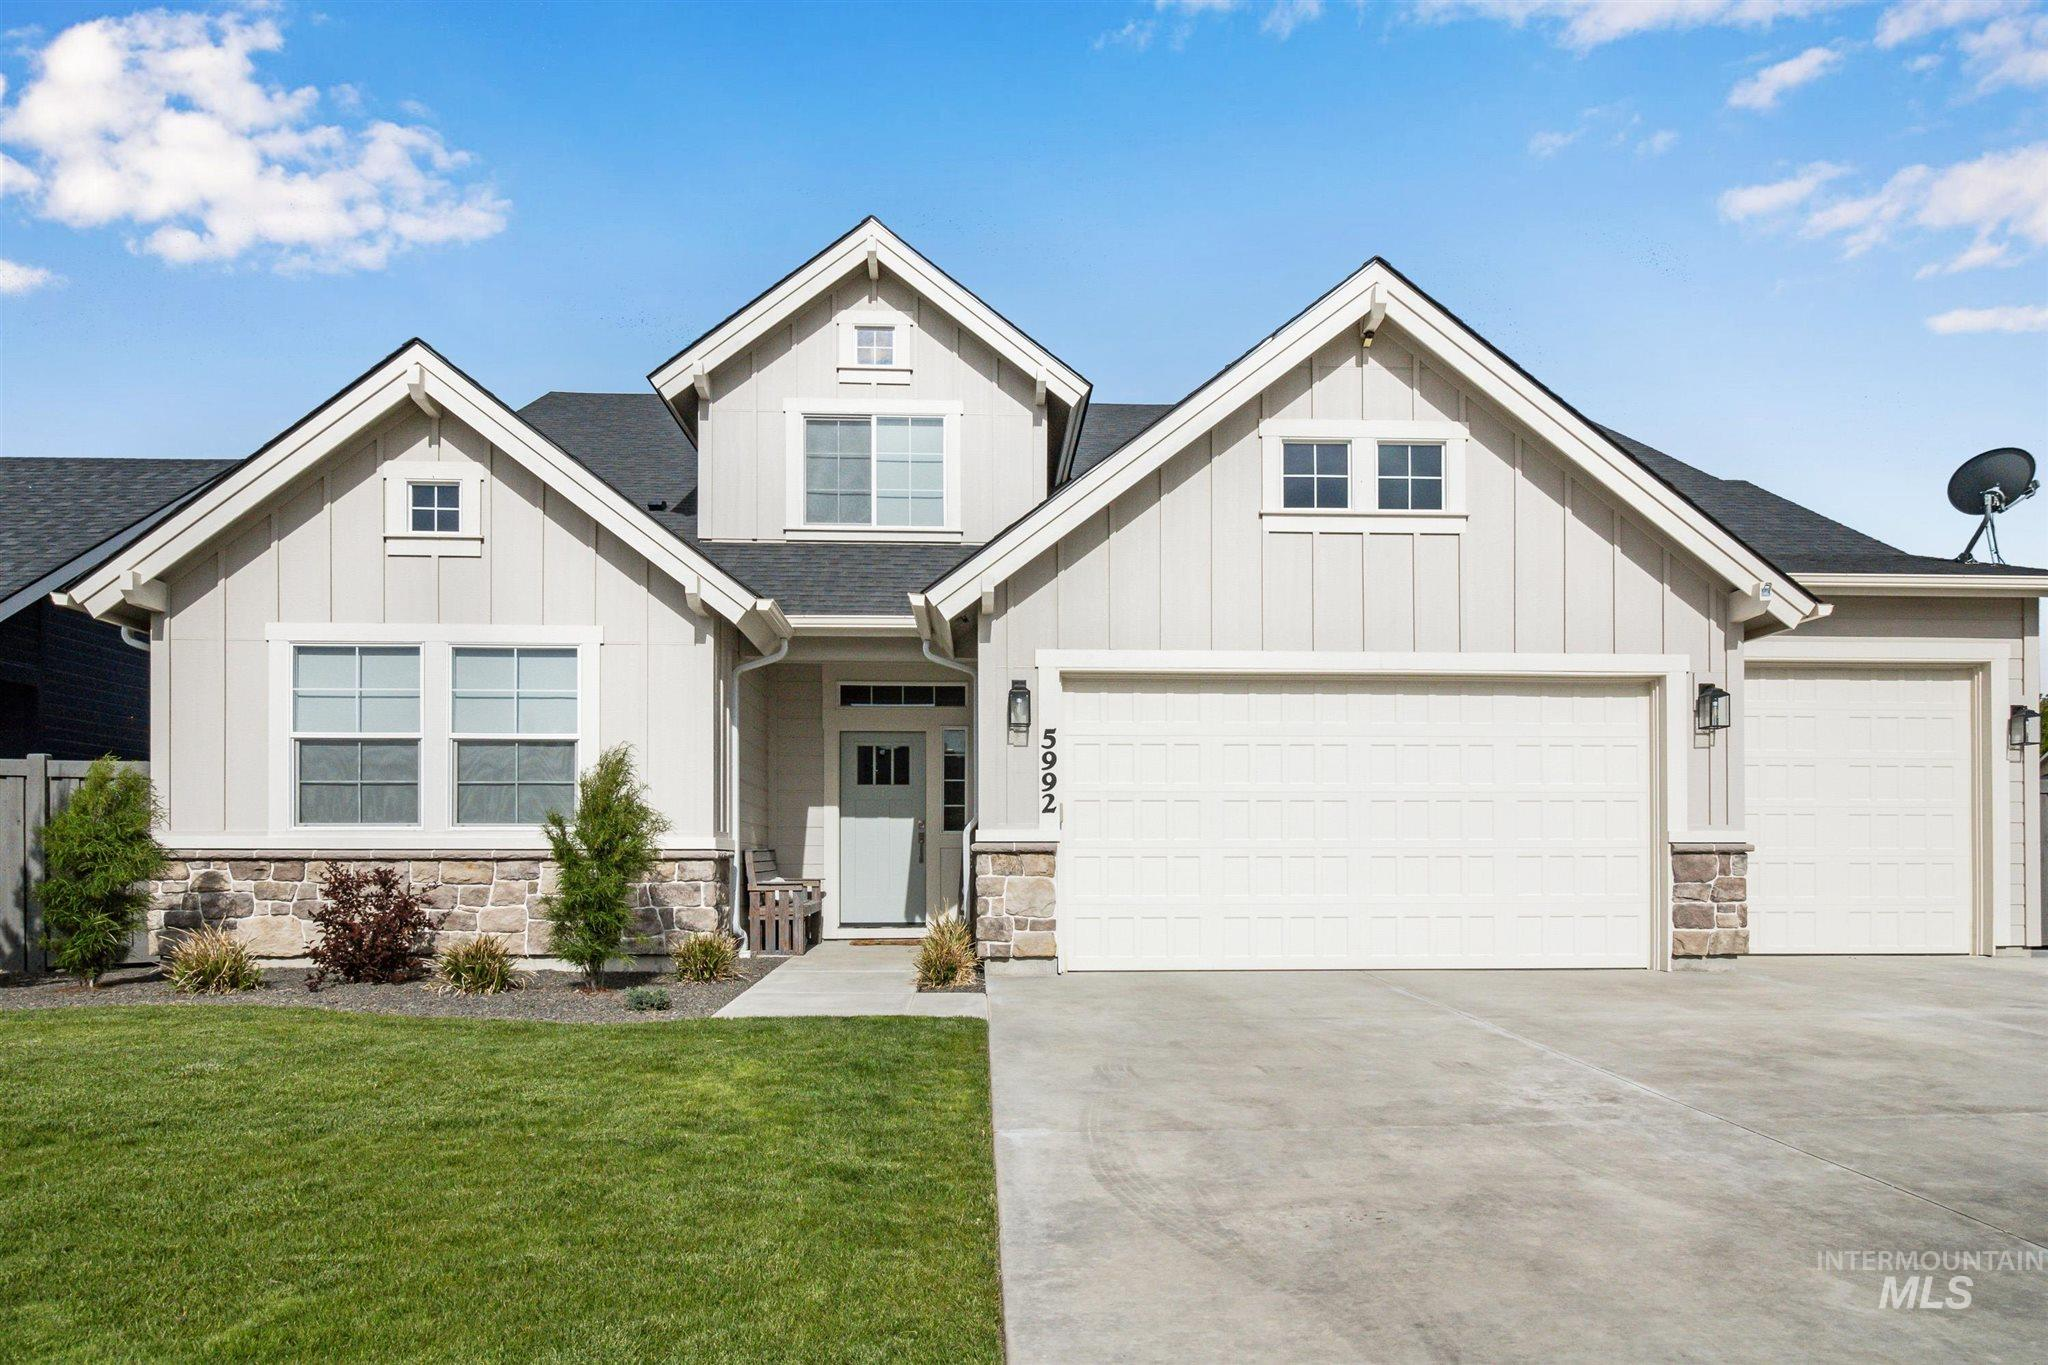 STUNNING 2 year old Alturas home in Century Farm, close to YMCA and future Albertsons! Features modern fixtures, spacious loft that can be converted to 4th bedroom, fireplace w/wainscoting detail, and more! Master on main with soaker tub & walk-in shower. Kitchen w/double oven & spacious pantry. 3-car garage w/extended 3rd bay, covered porch, & charming curb appeal w/mature landscaping. Located at the end of a quiet street in a quiet neighborhood w/community pools & top-rated school within walking distance.